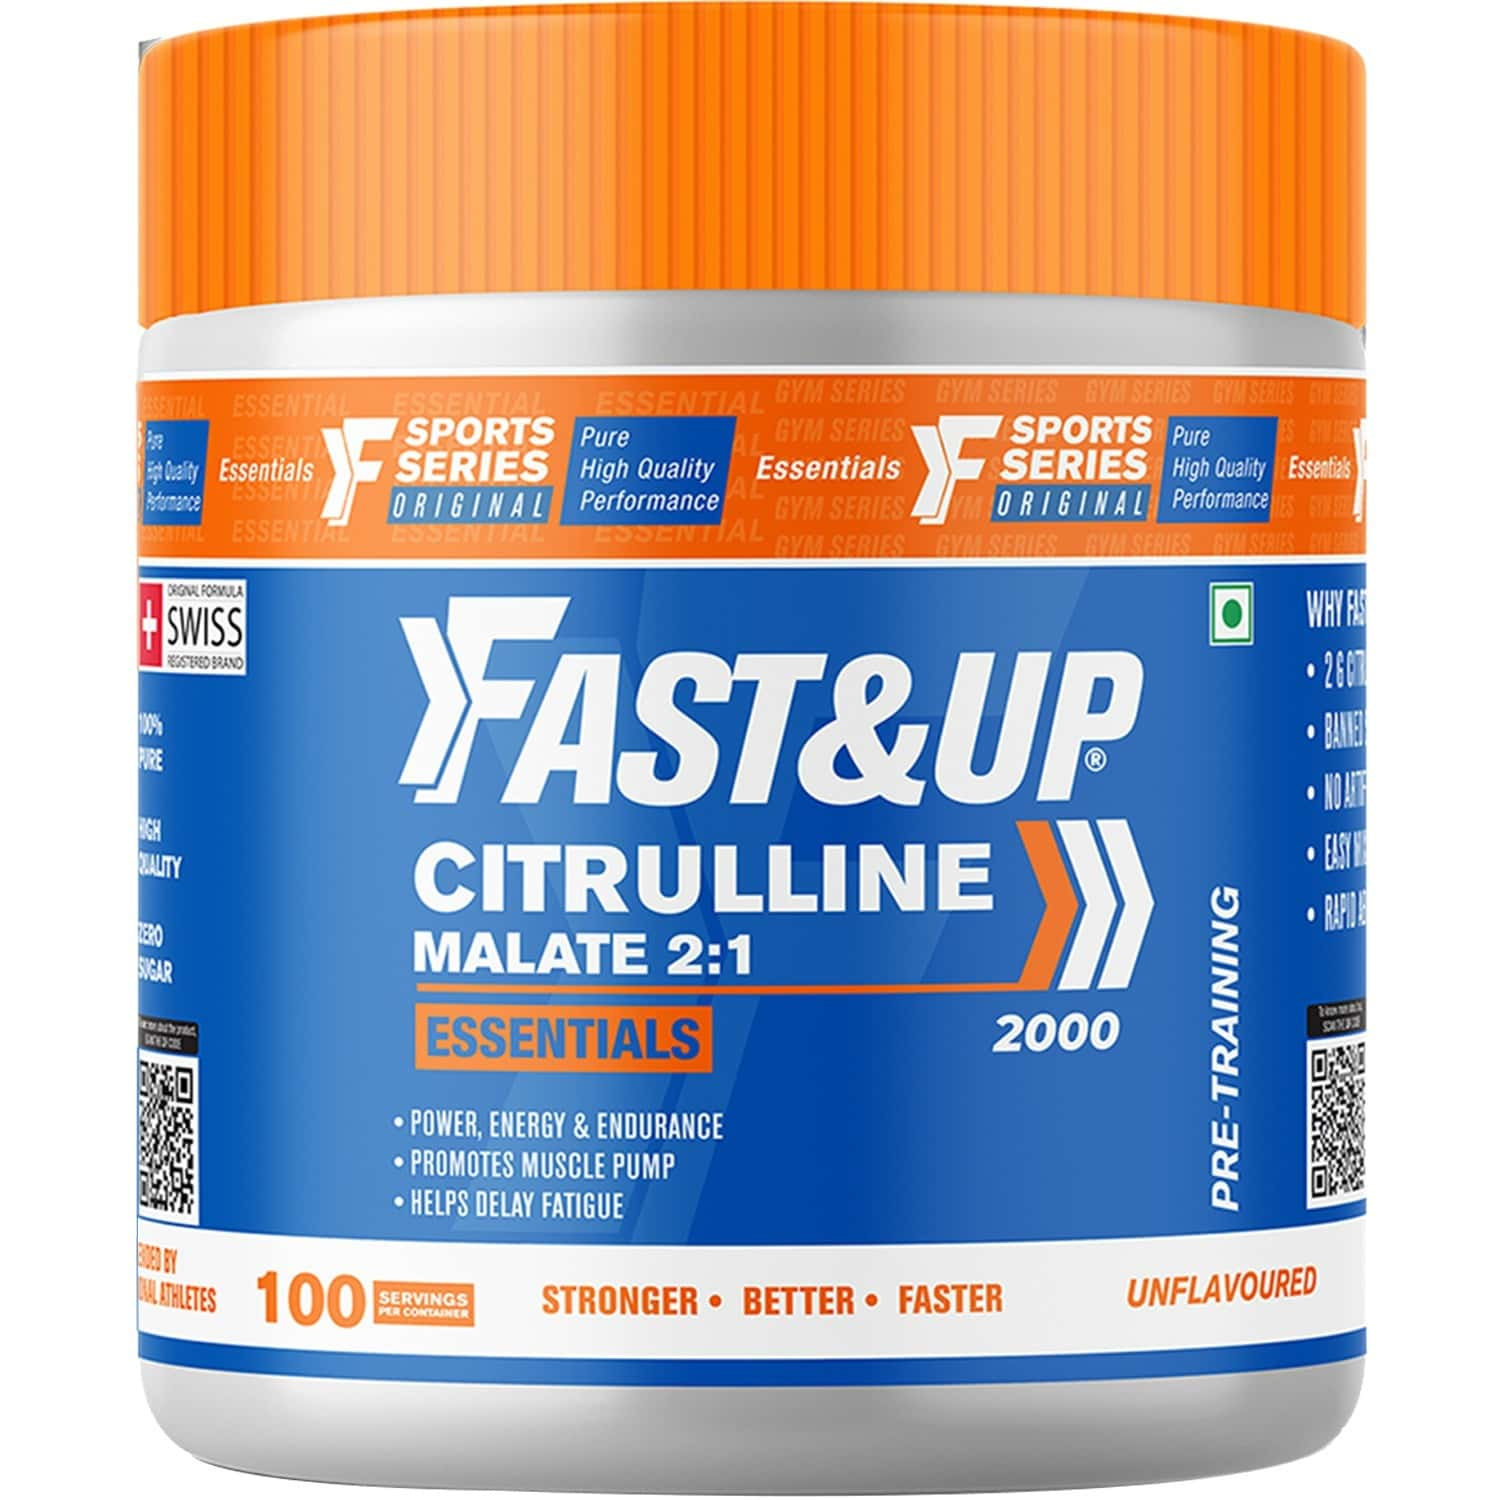 Fast&up Citrulline Malate Citrulline Essentials, Unflavoured, 2g Citrulline Malate (2:1), Muscle Pump, Enhanced Energy, Power & Strength, Pure, Banned Substance Free, No Booster, Zero Sugar, Easy Mixing 100 Servings